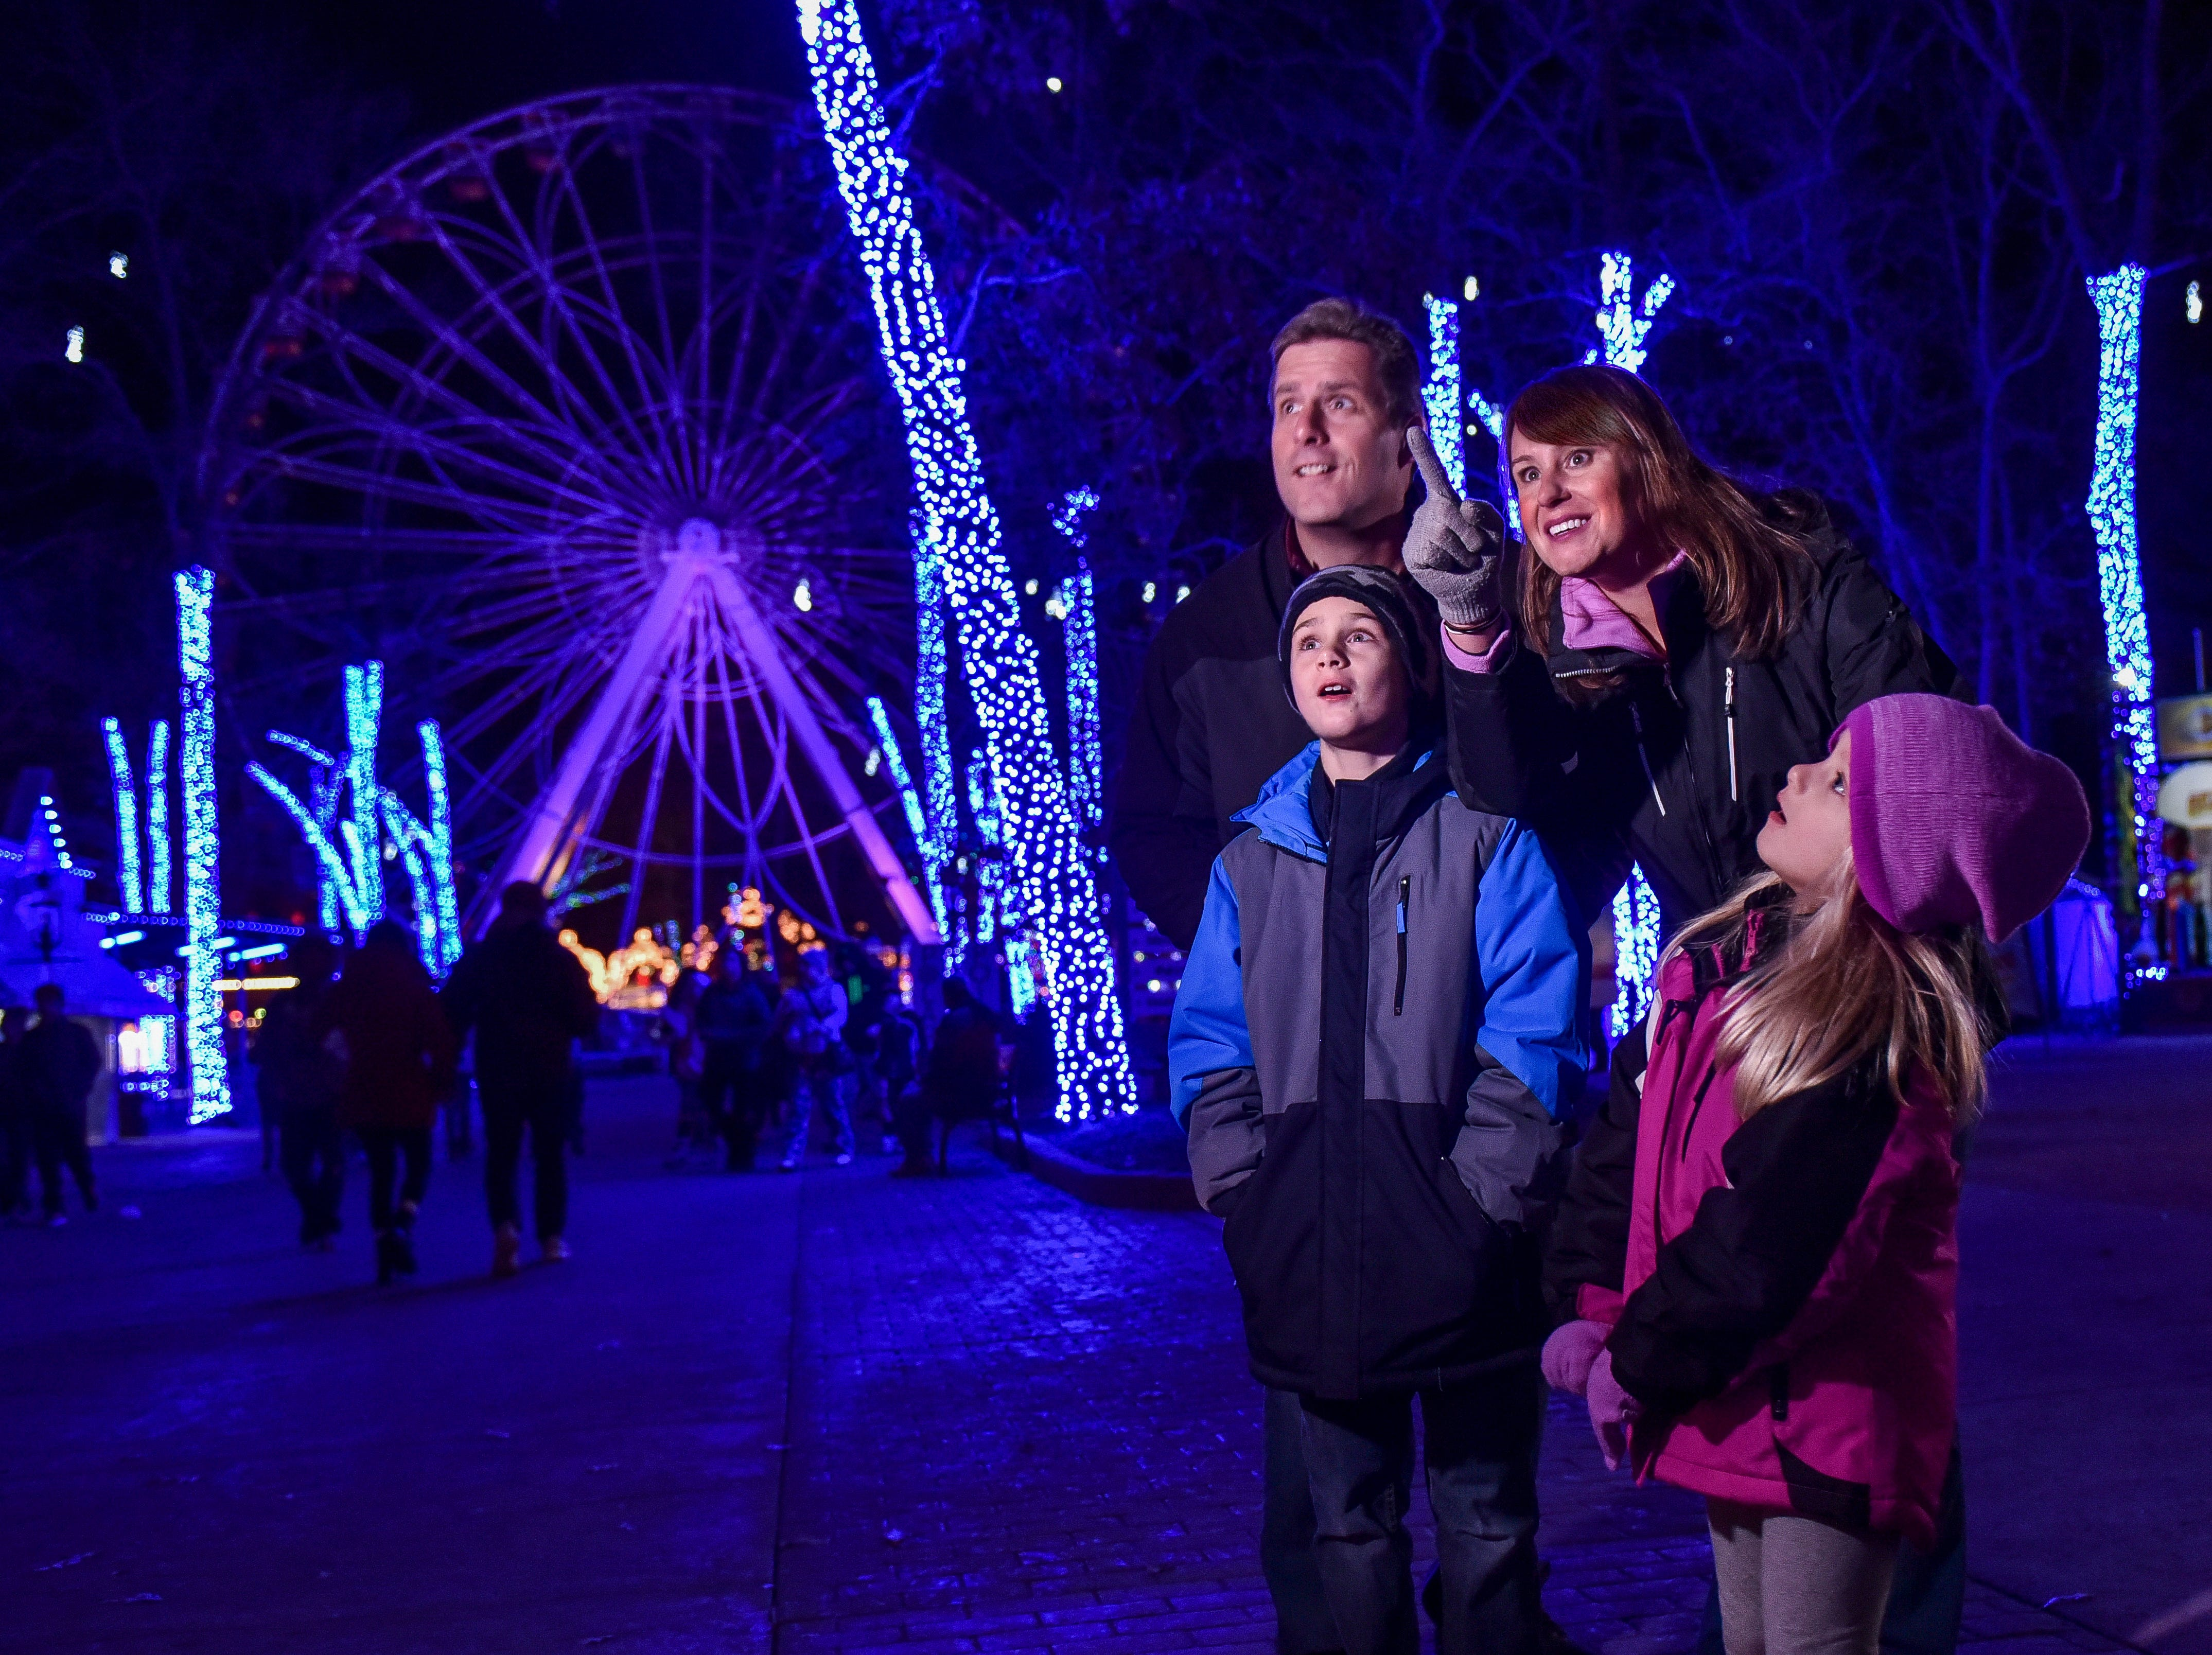 Christmas 2018: A guide to New Jersey holiday events